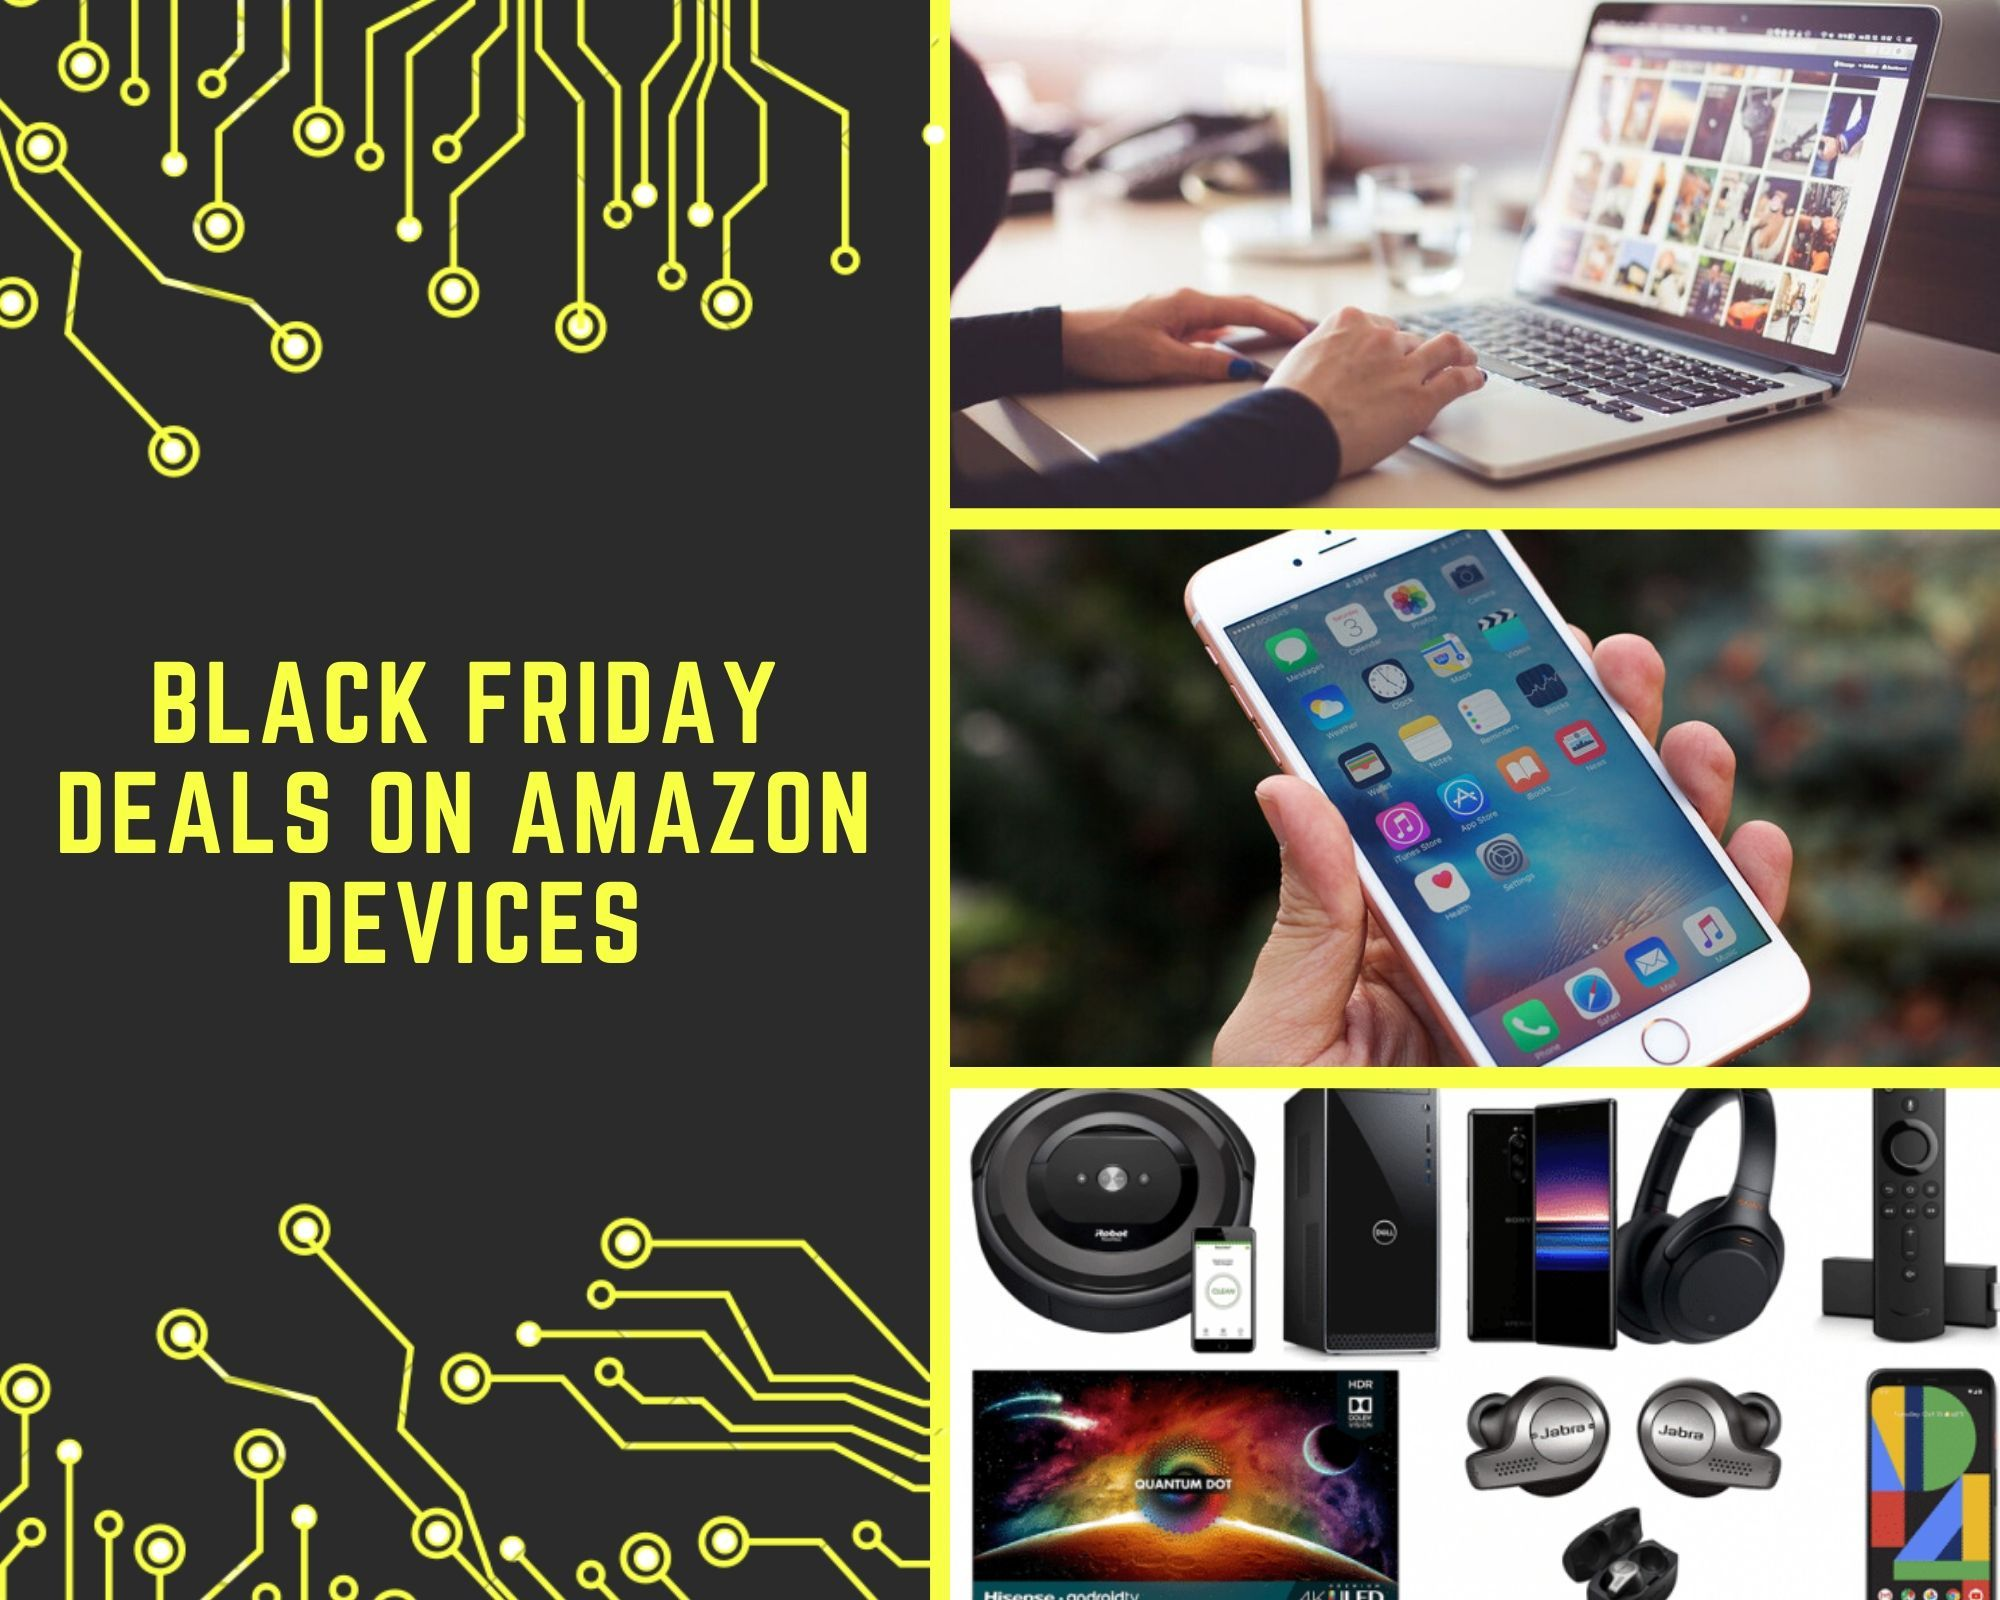 Best Black Friday And Cyber Monday 2020 Iphone Deals Amazon Devices Iphone Deals Black Friday